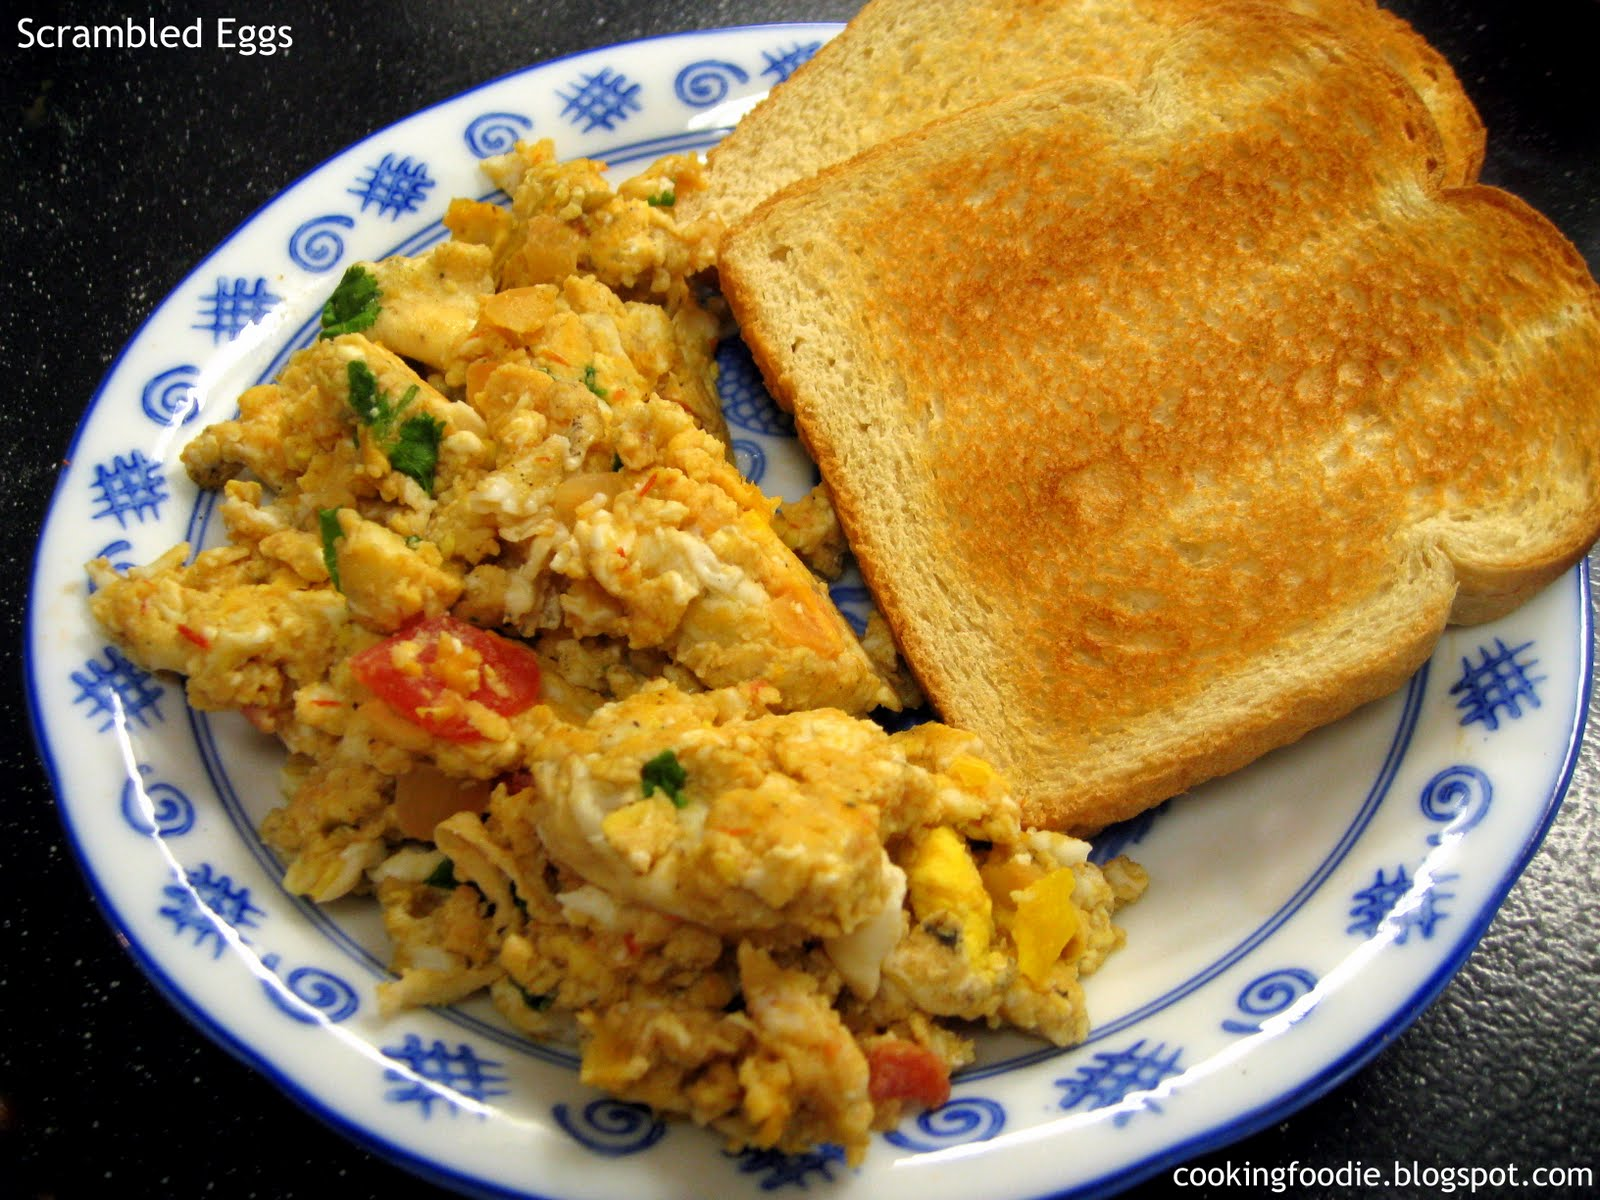 365 days of Eating: 5 minute breakfast - Scrambled Eggs and Toast